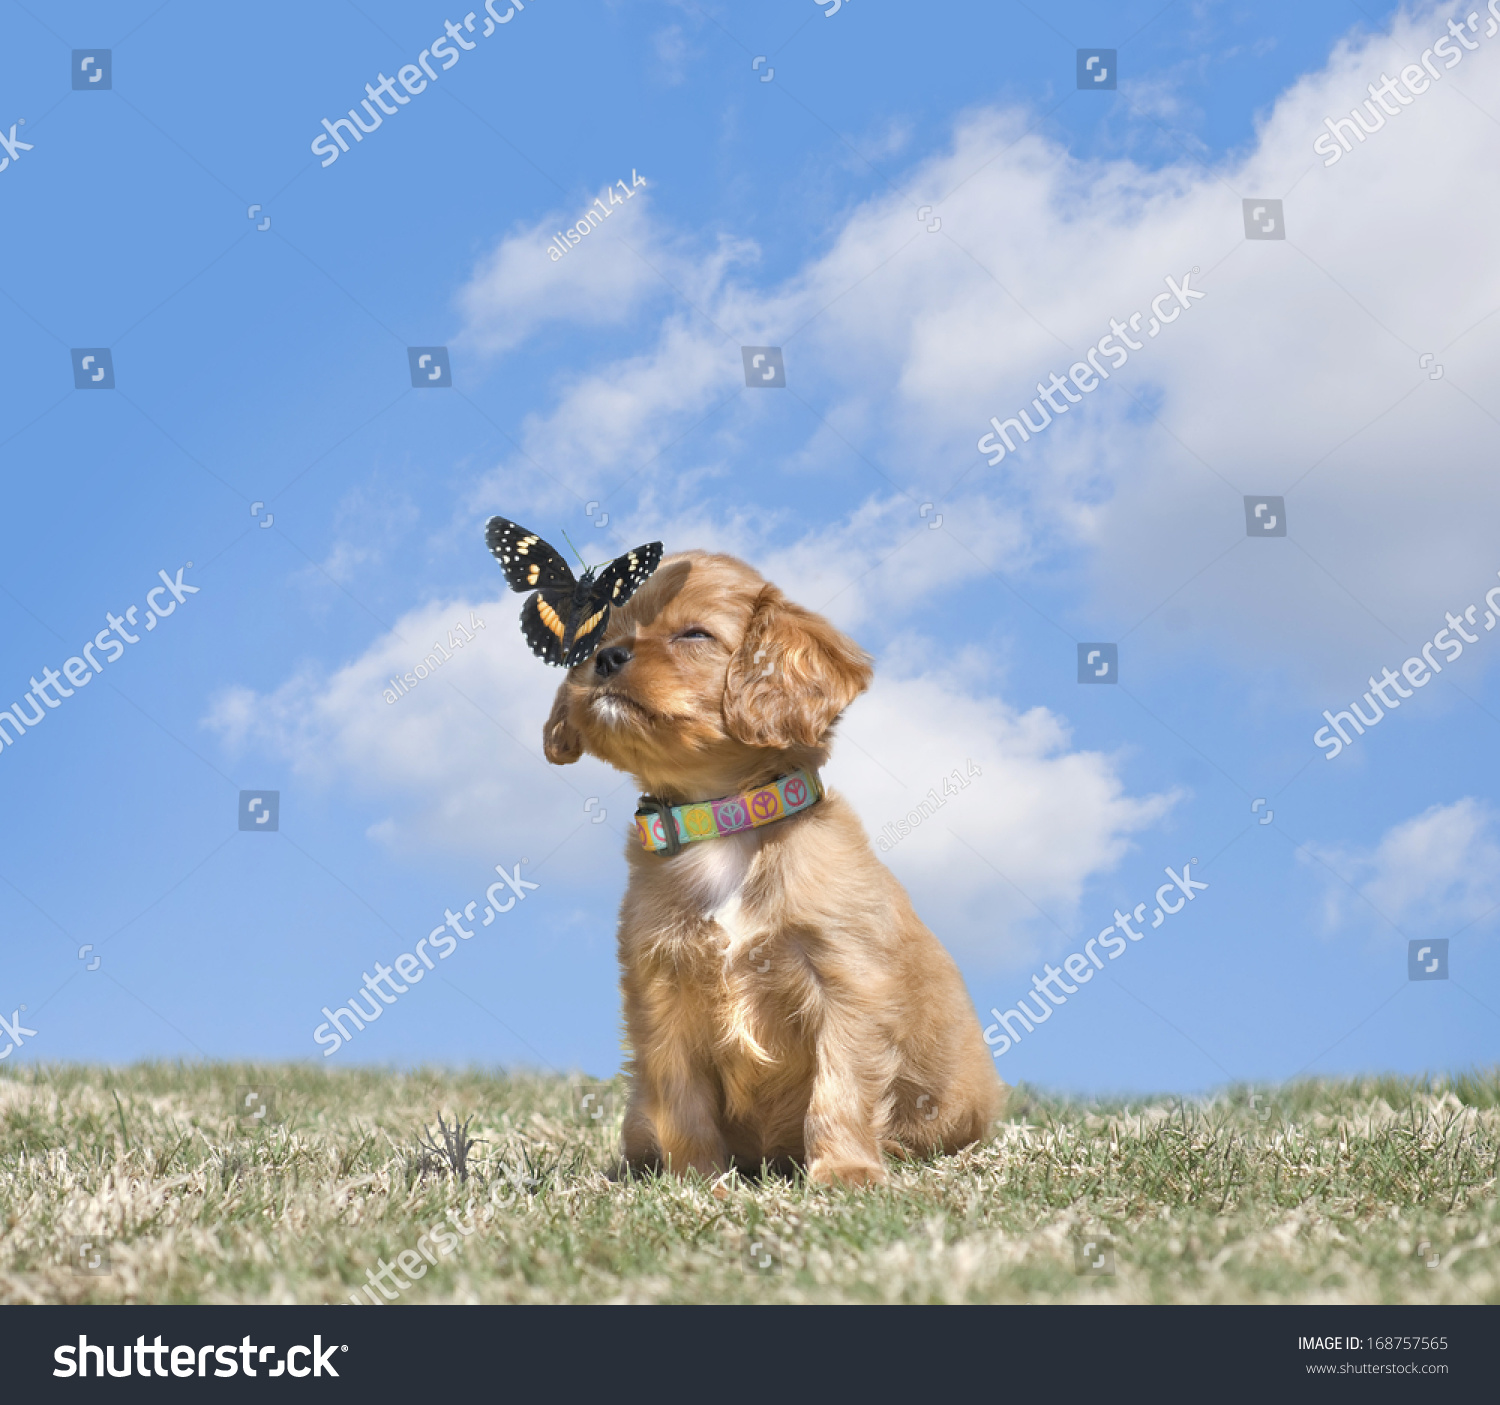 stock-photo-adorable-cavalier-king-charl